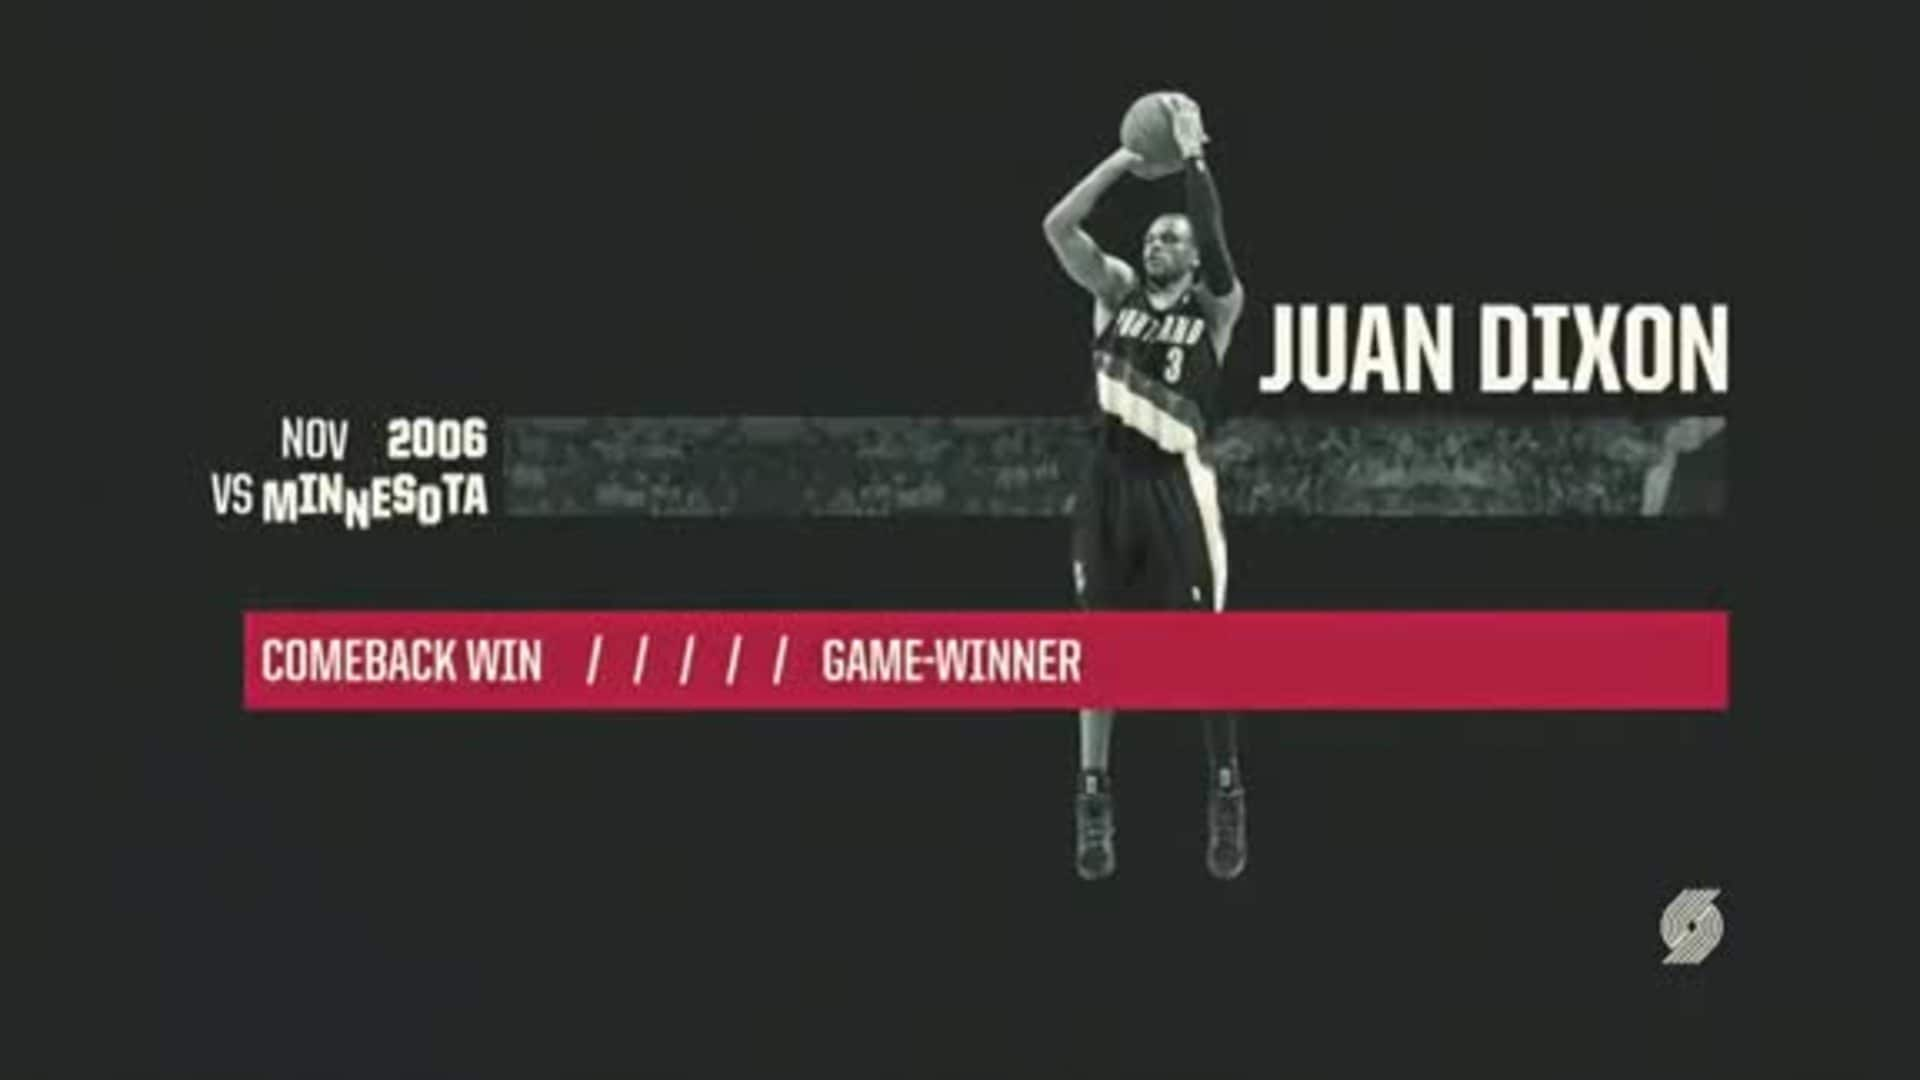 Juan Dixon hits the game-winner vs. Minnesota | Classic Trail Blazers Games